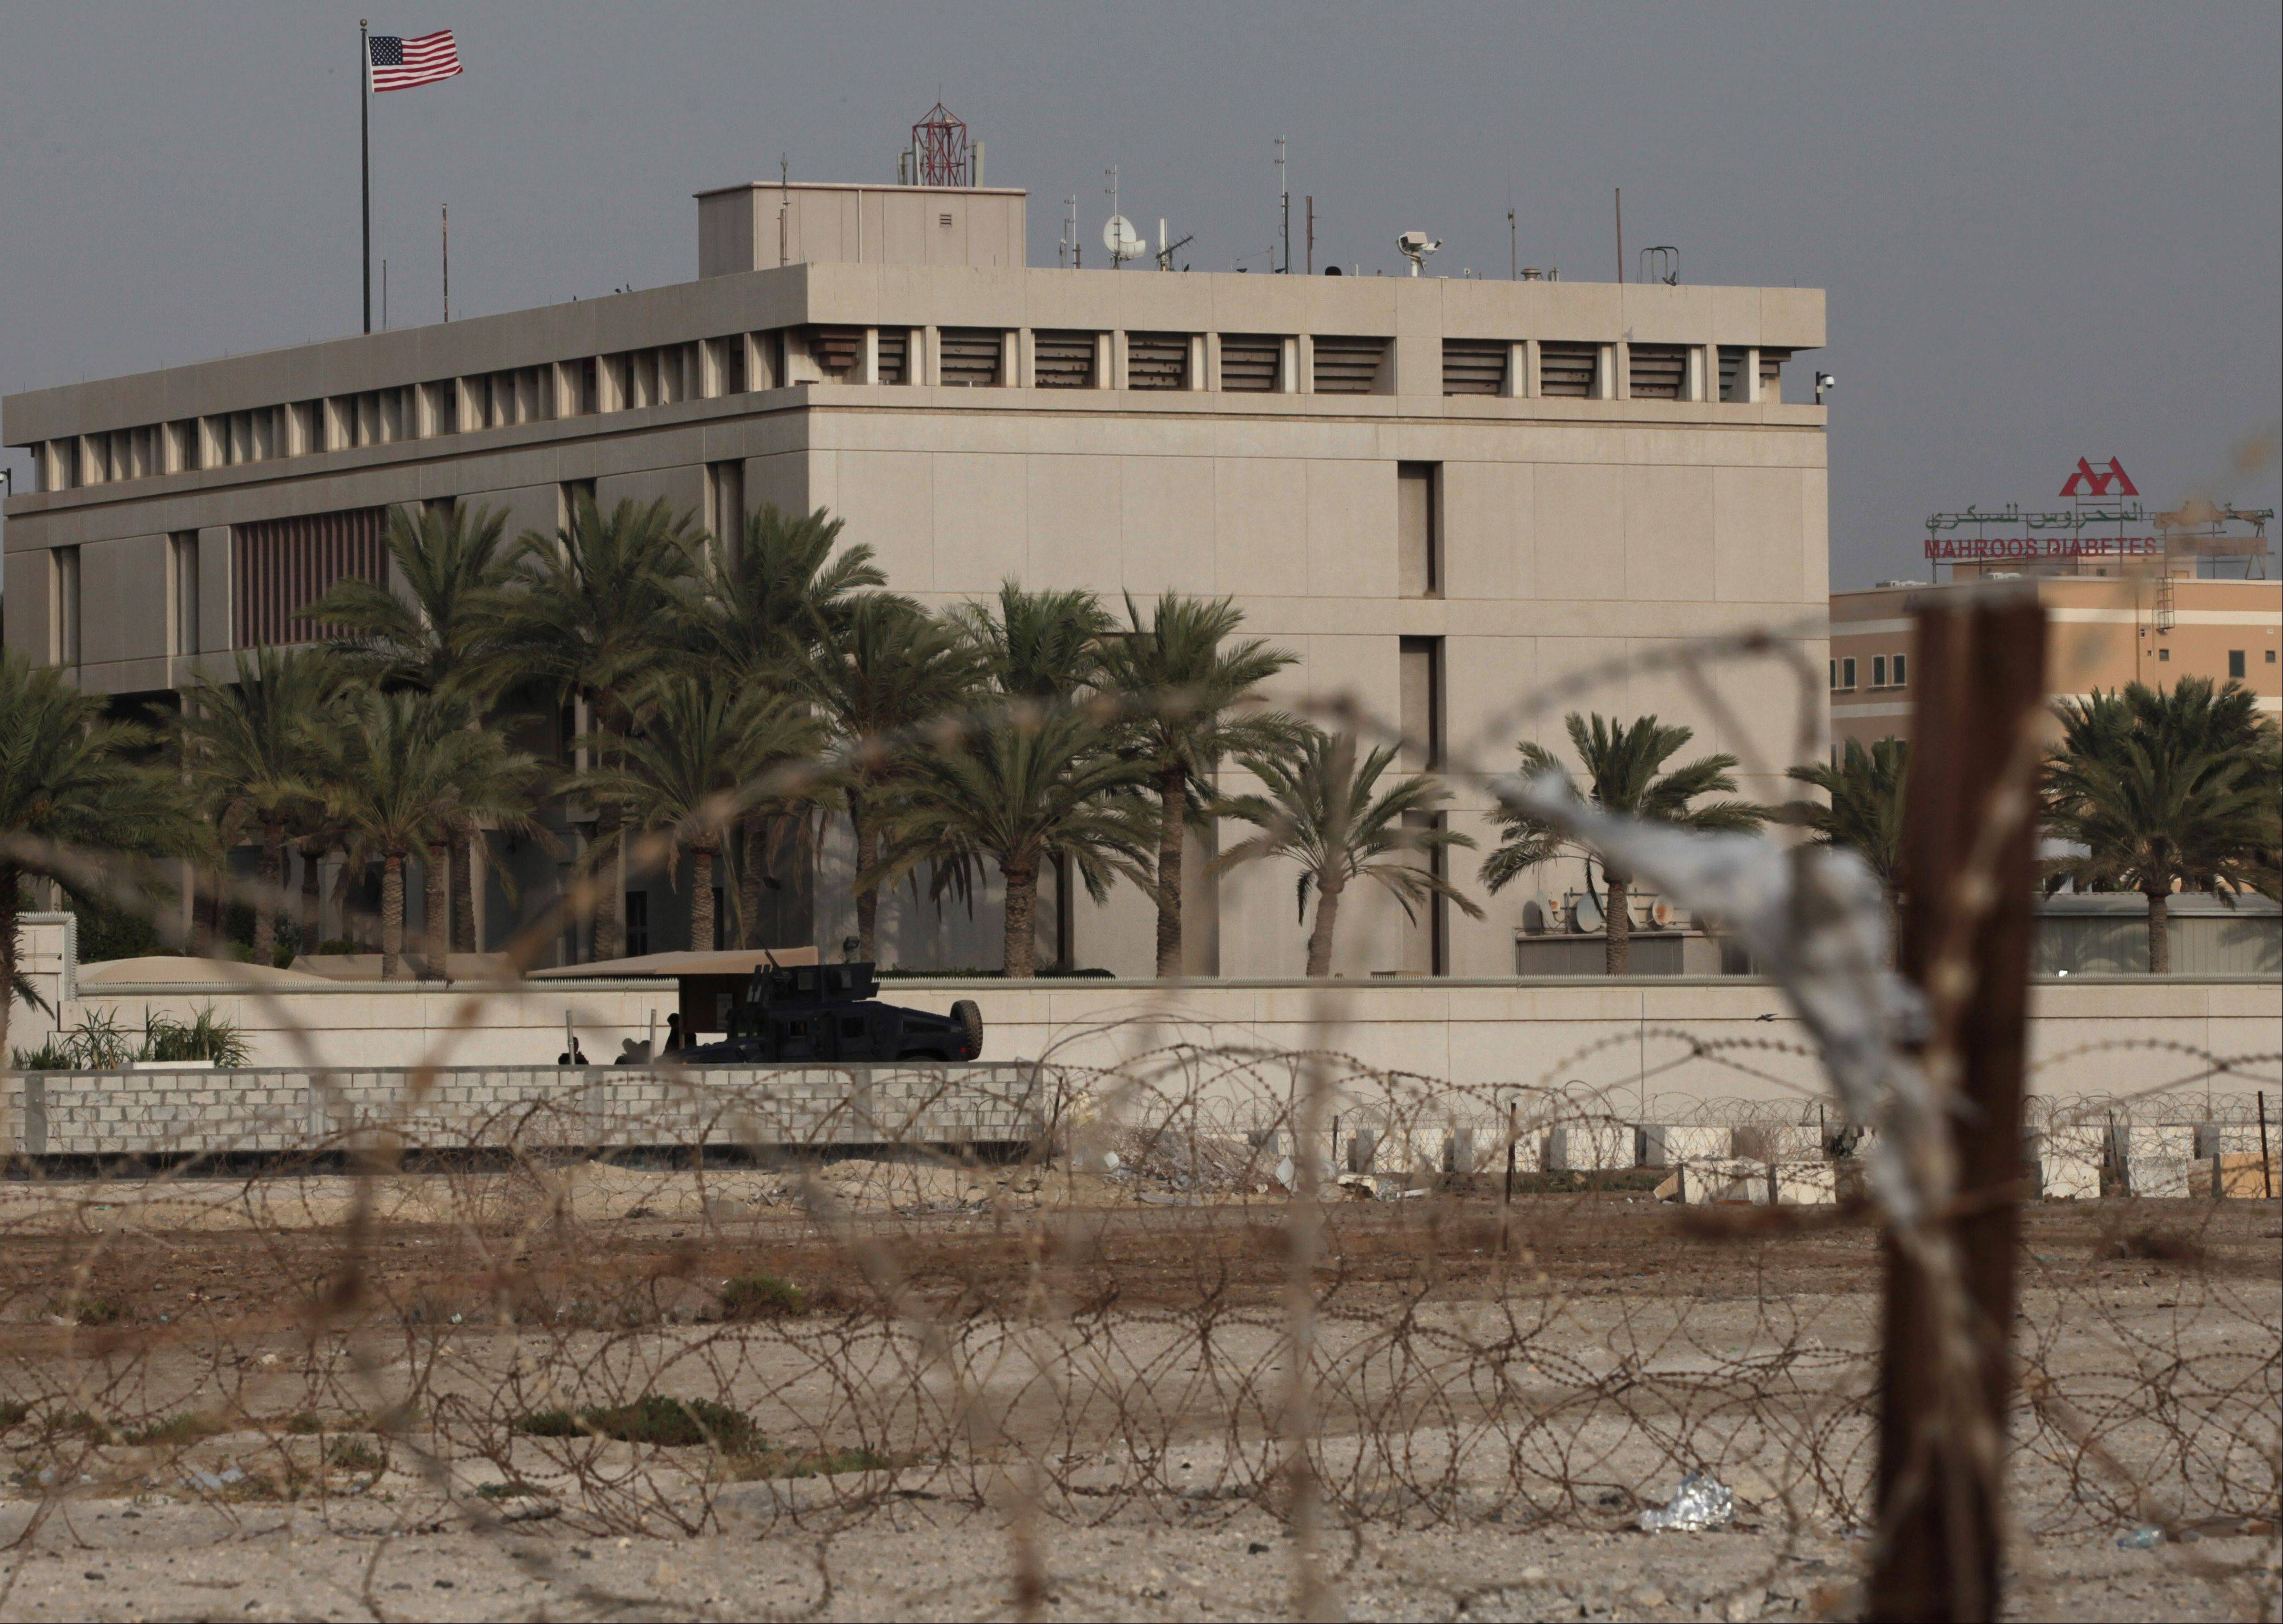 A Bahraini armored vehicle and personnel reinforce U.S. Embassy security just outside of a gate to the building, surrounded in barbed wire, in Manama, Bahrain, on Sunday.